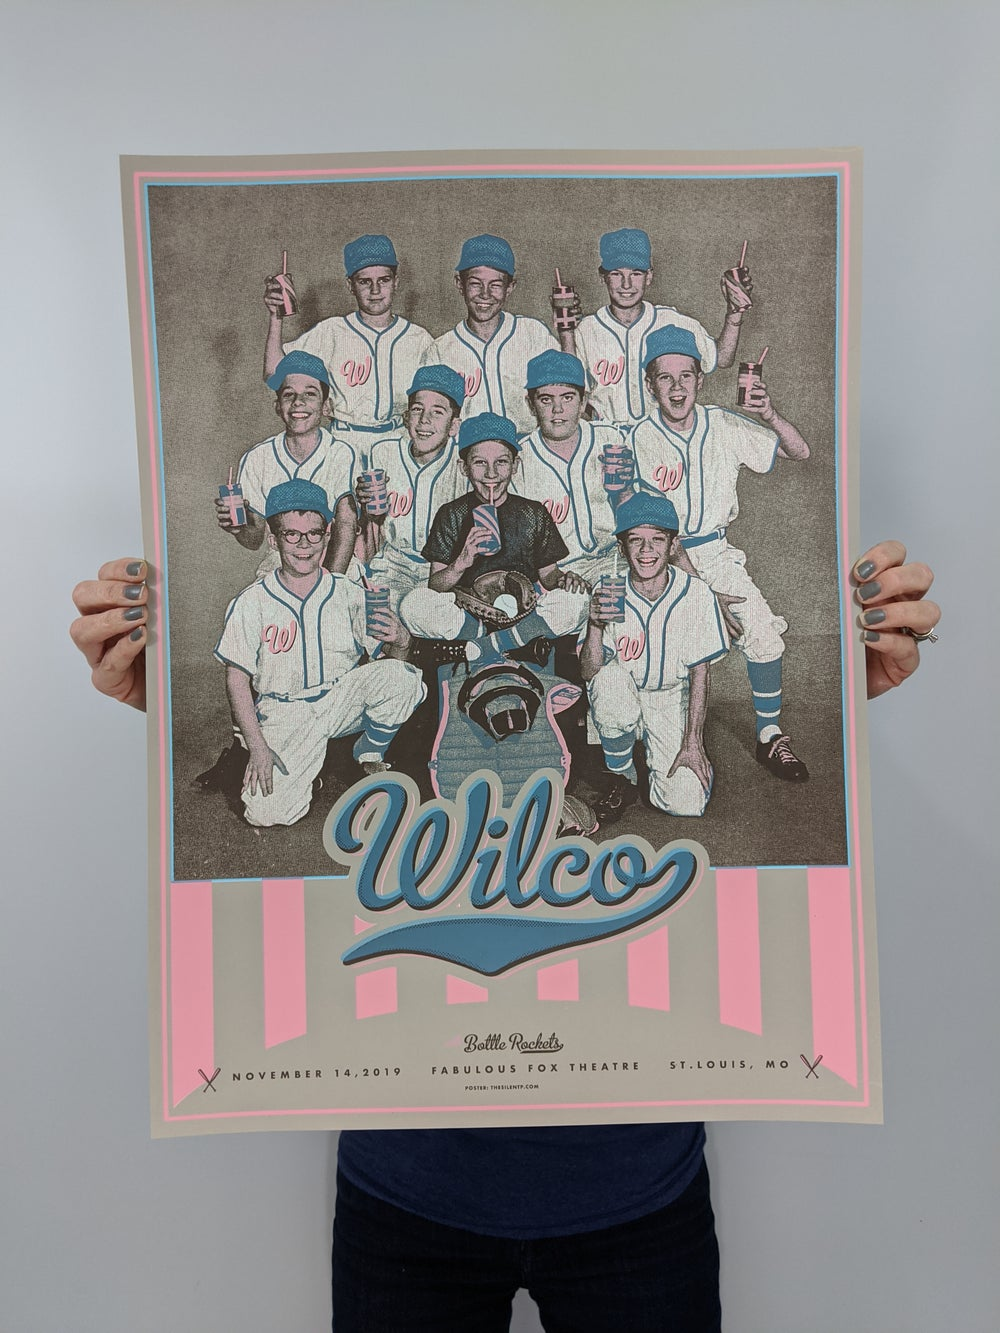 Wilco, 'Team Players' poster, St. Louis, MO.